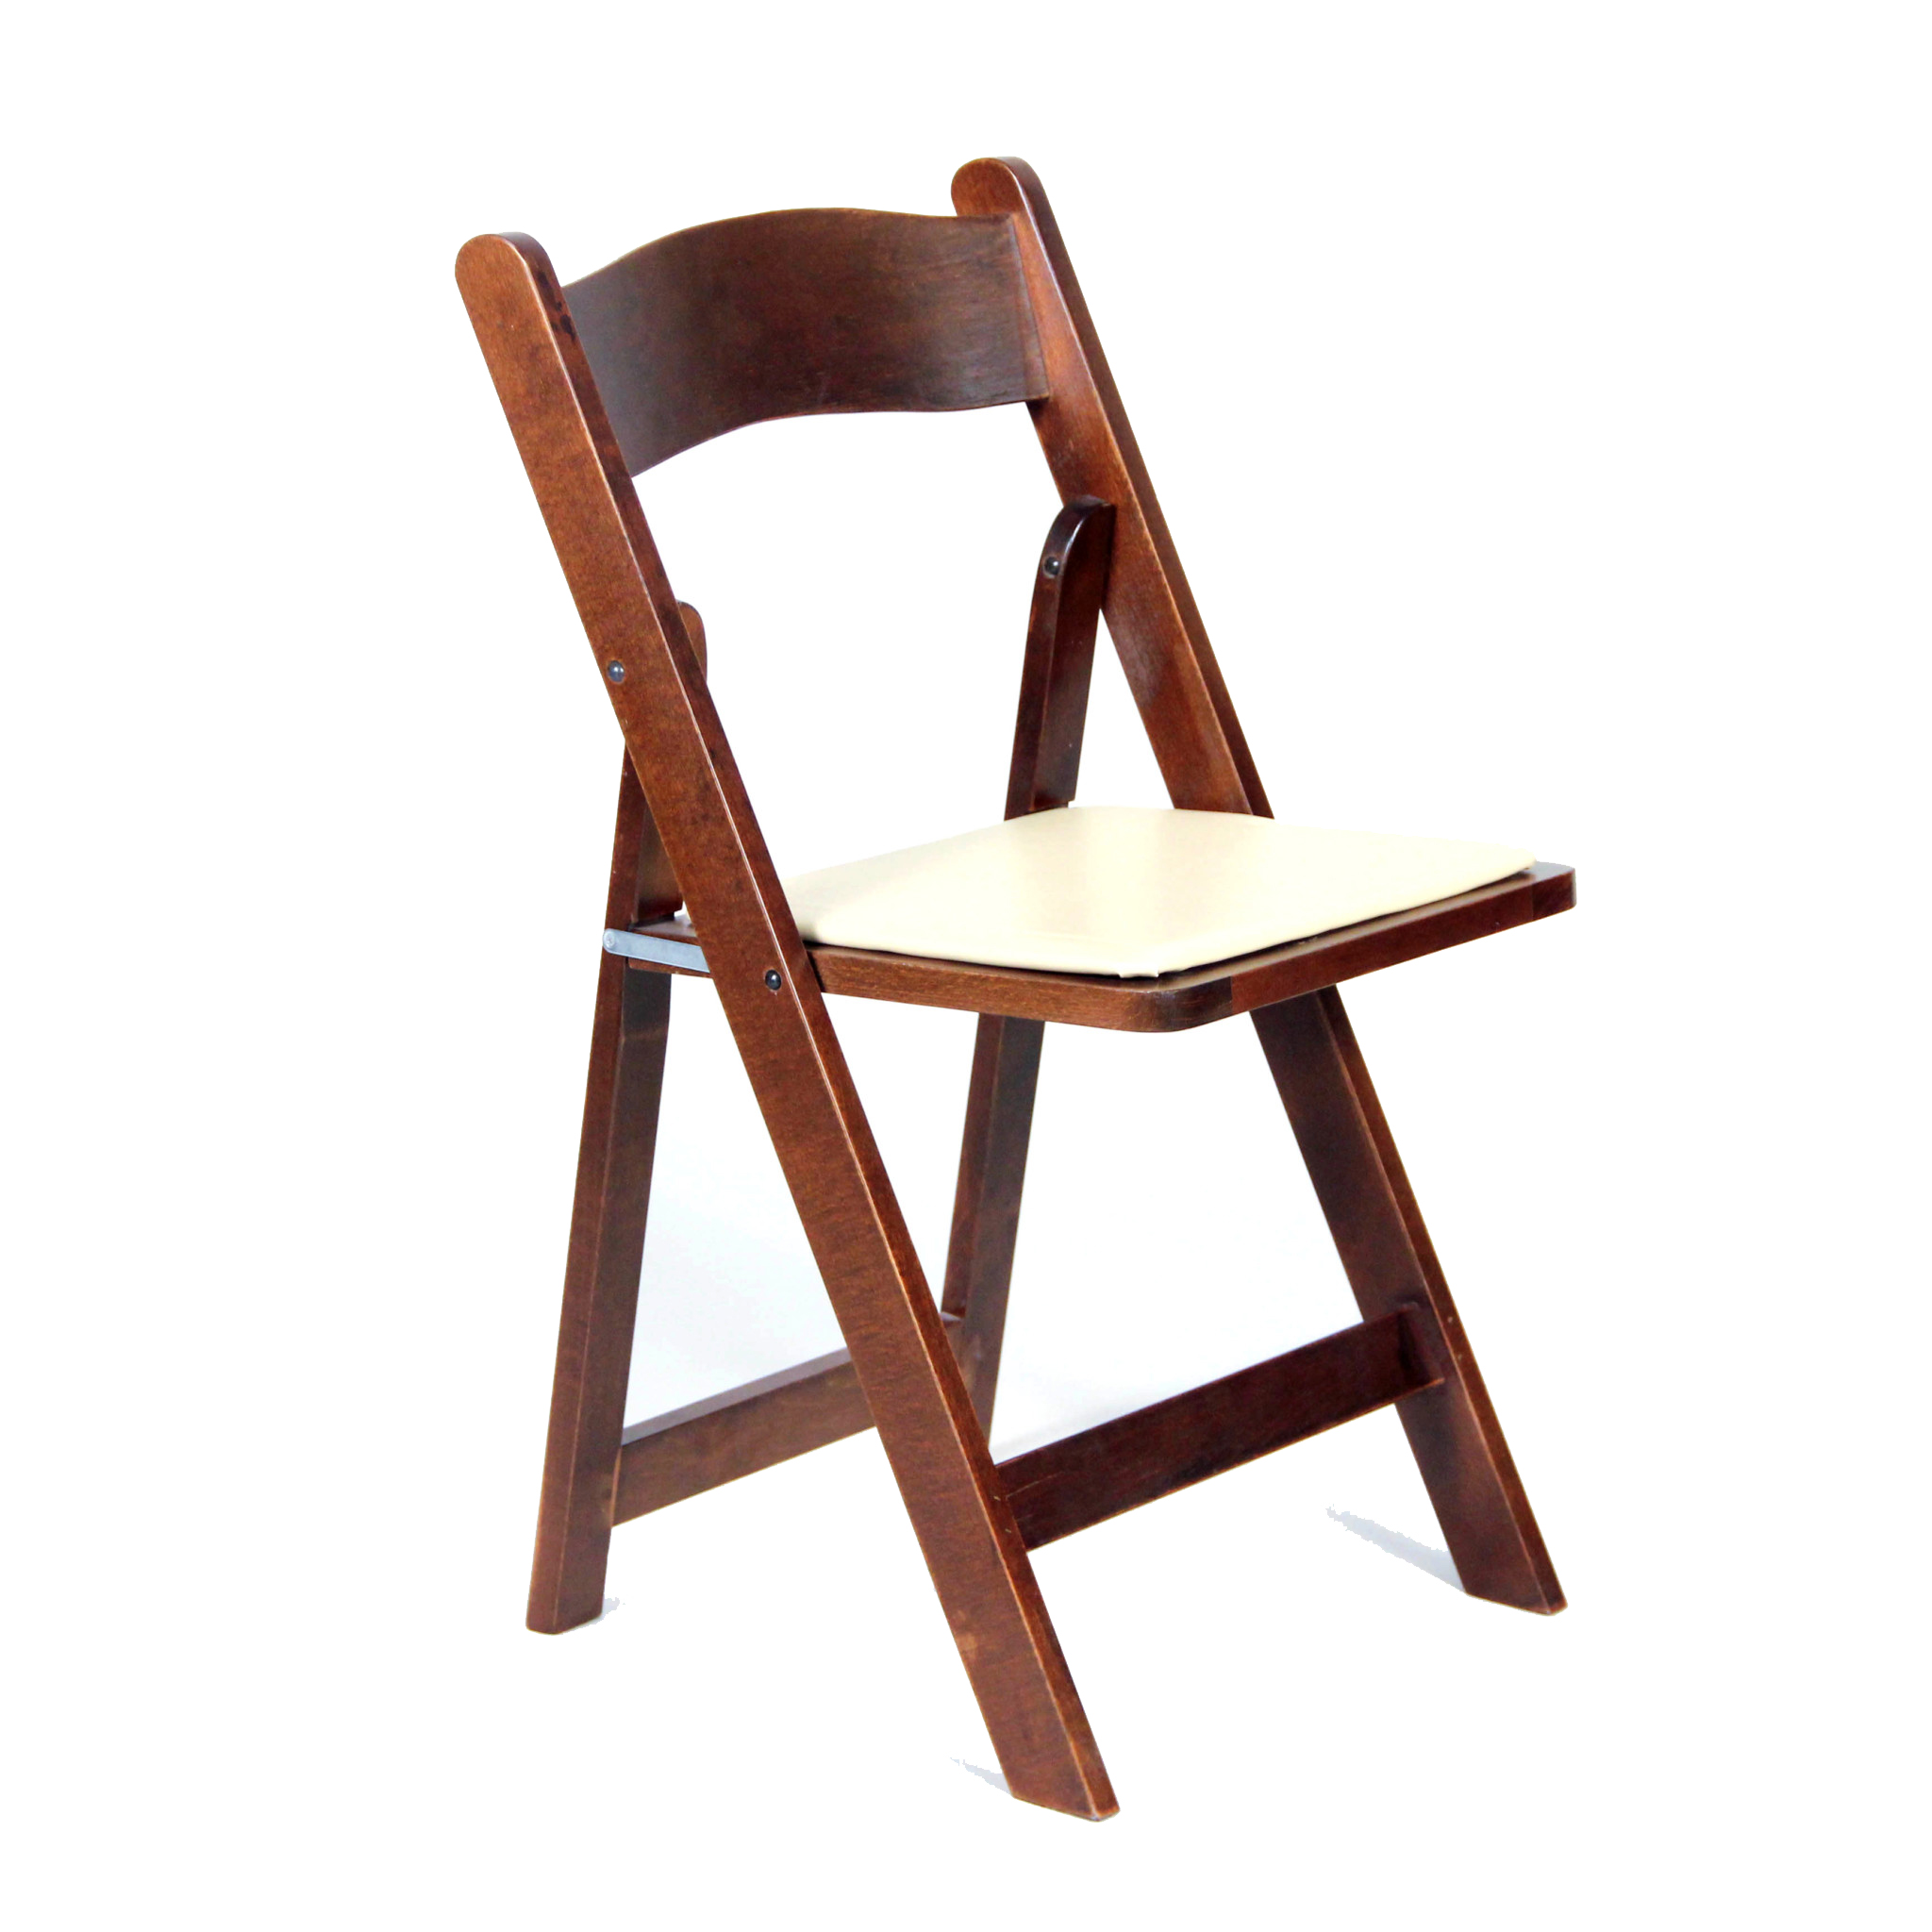 Chairs Folding Mahogany Folding Chair With Padded Seat Peter Corvallis Productions